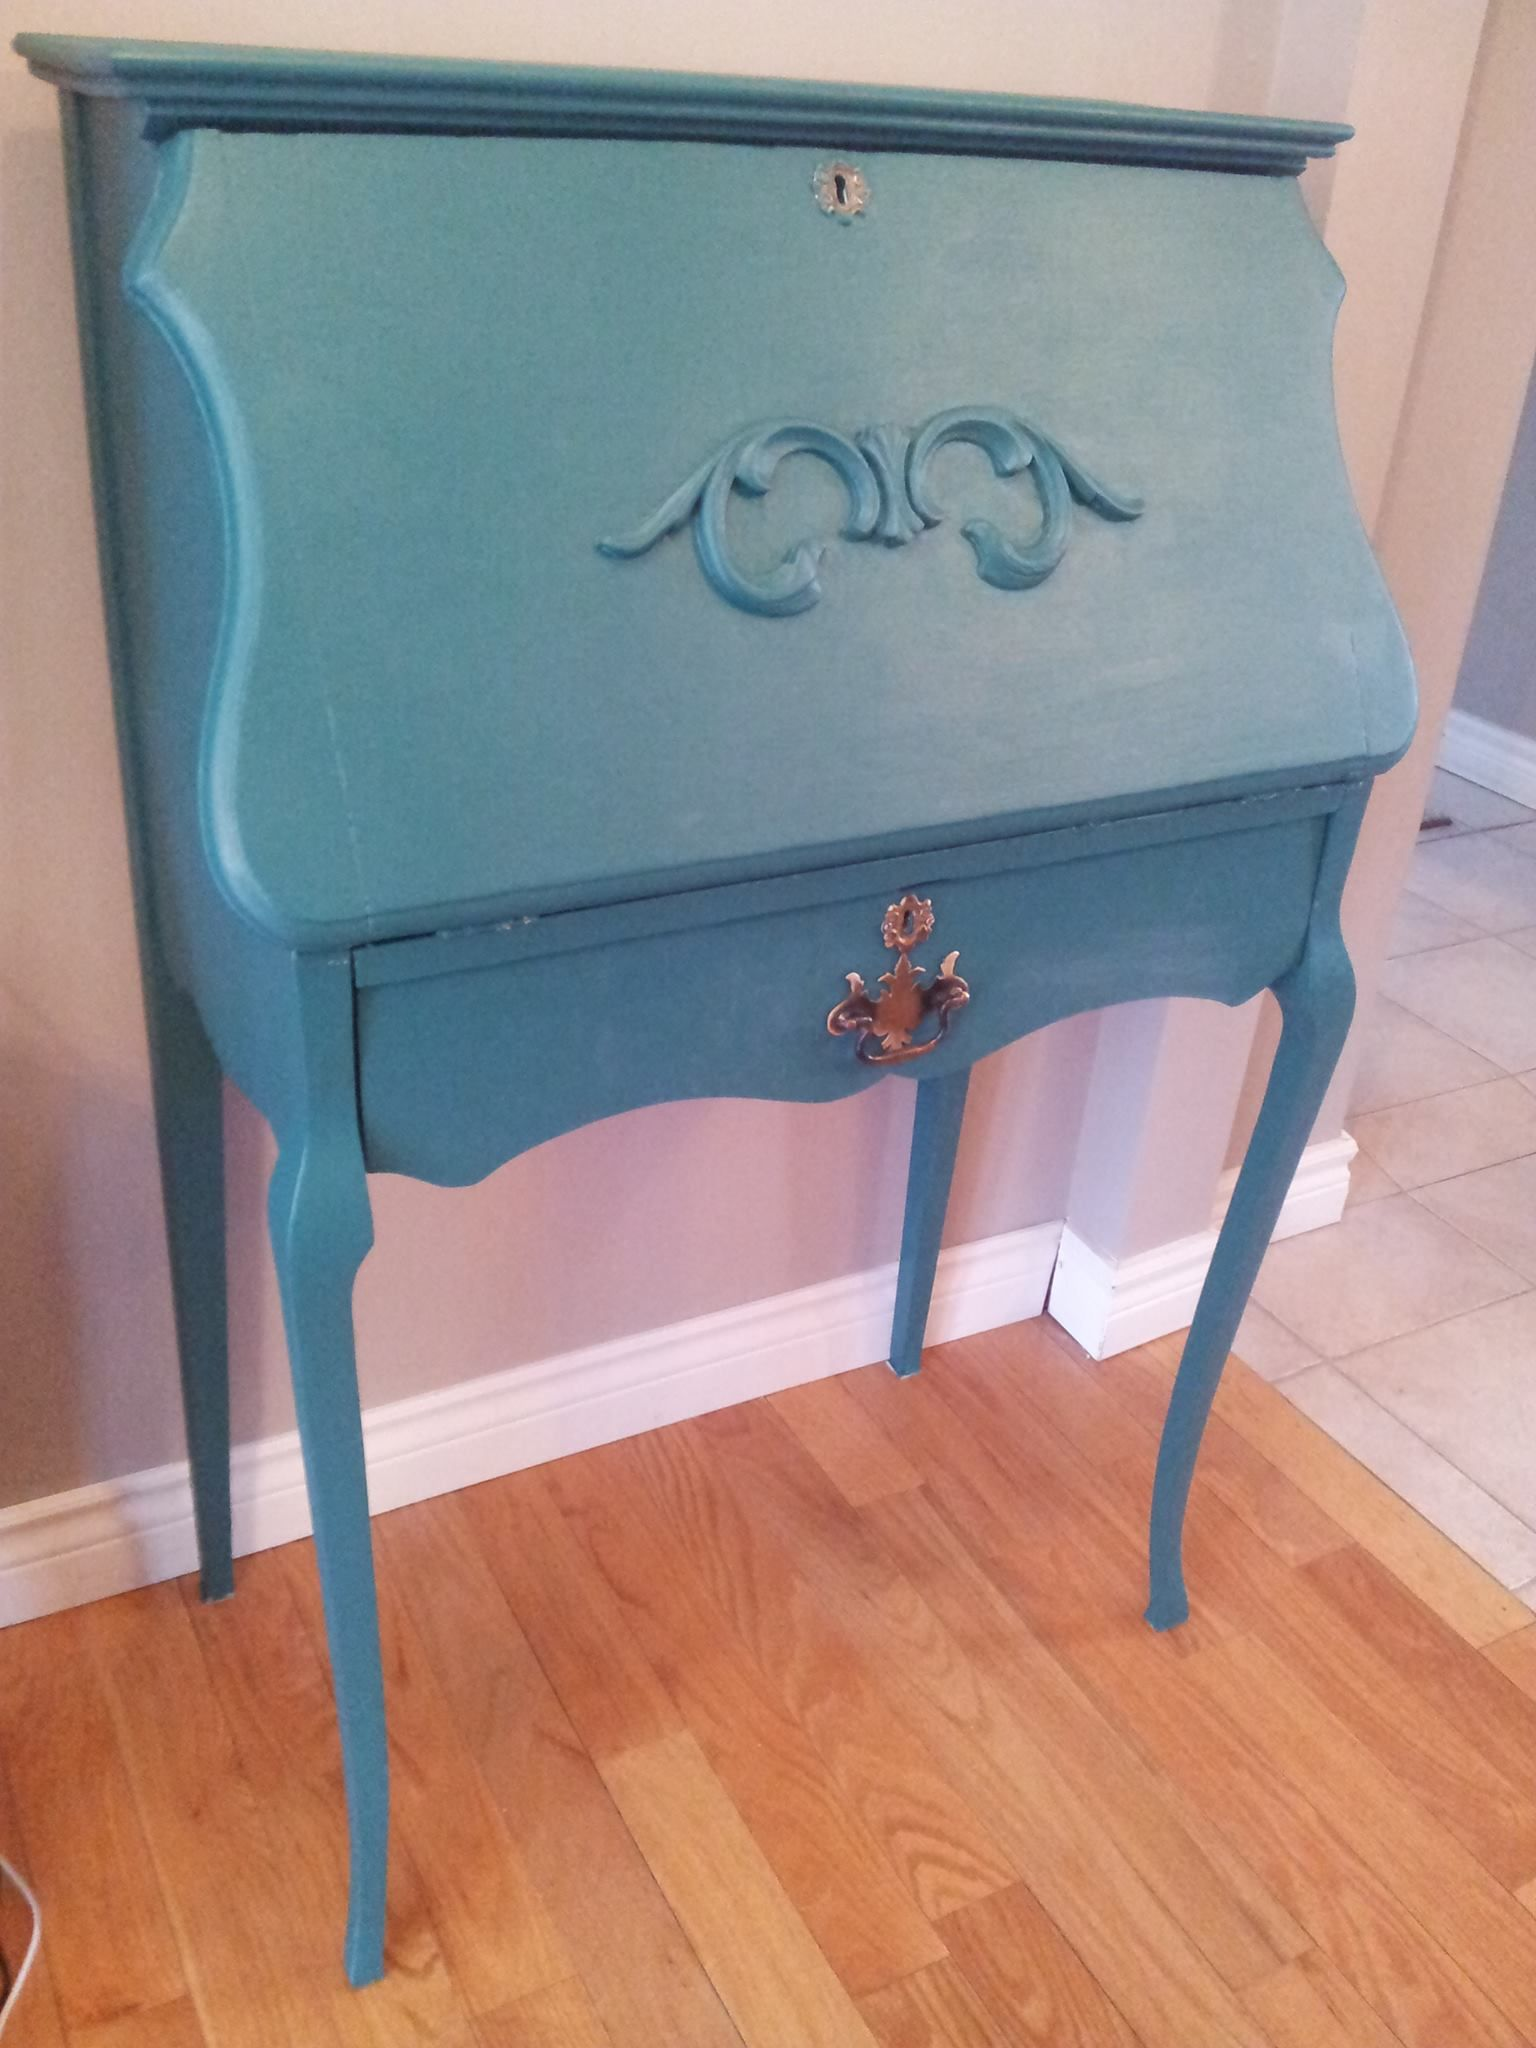 Kijiji Kitchener Furniture Refurbished Turquoise Desk Fusion Mineral Paint Renfrew Blue